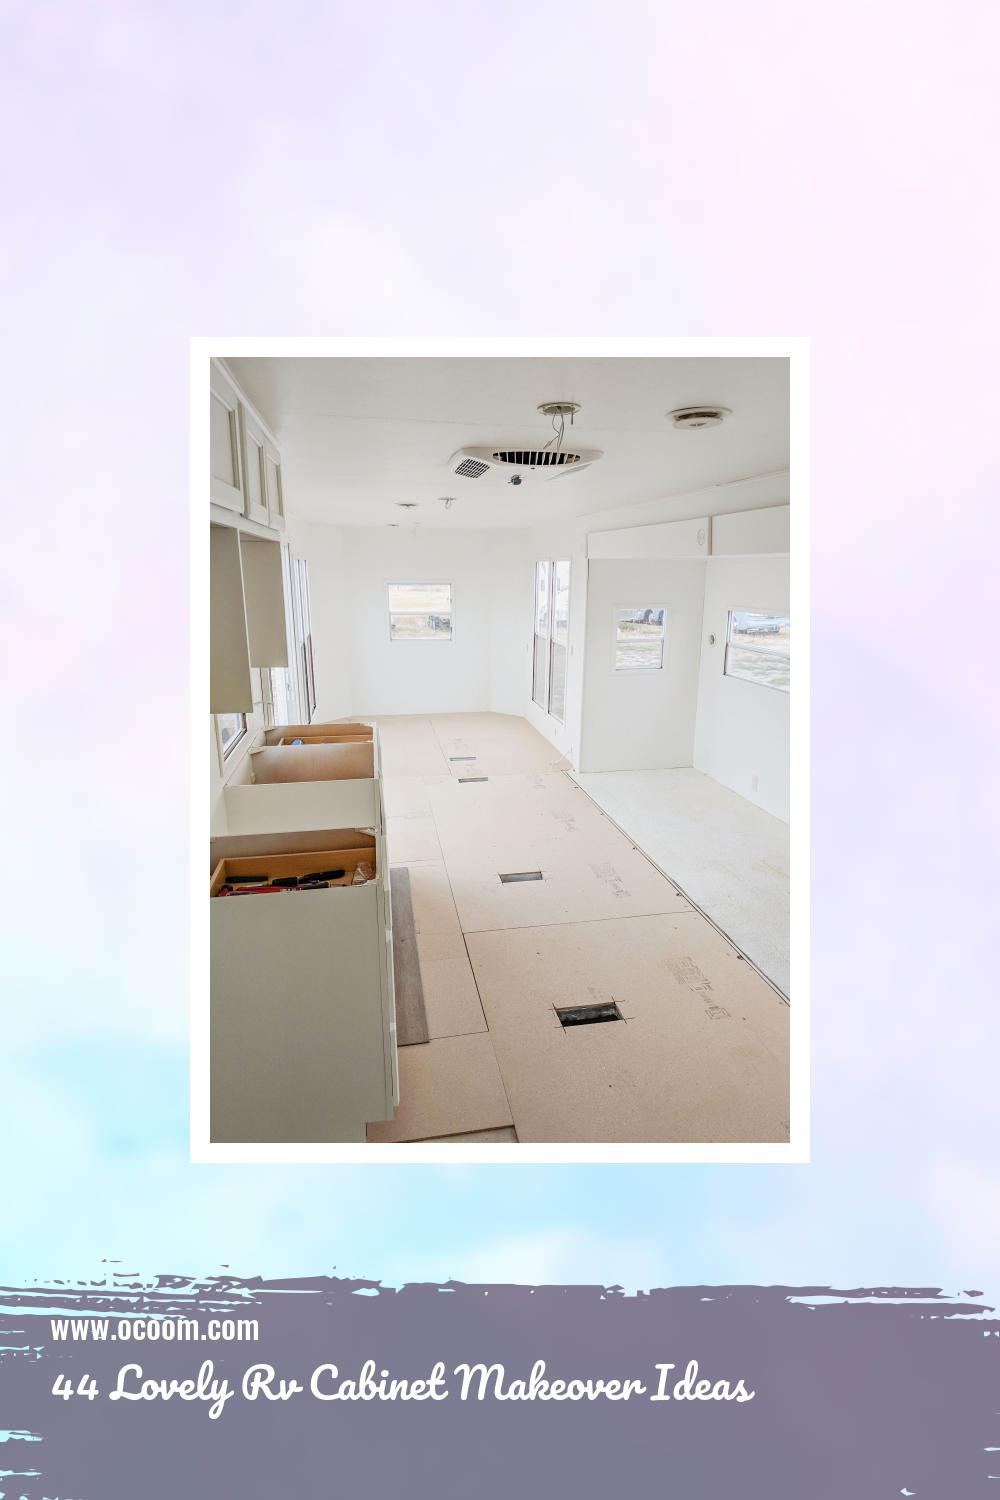 44 Lovely Rv Cabinet Makeover Ideas 24